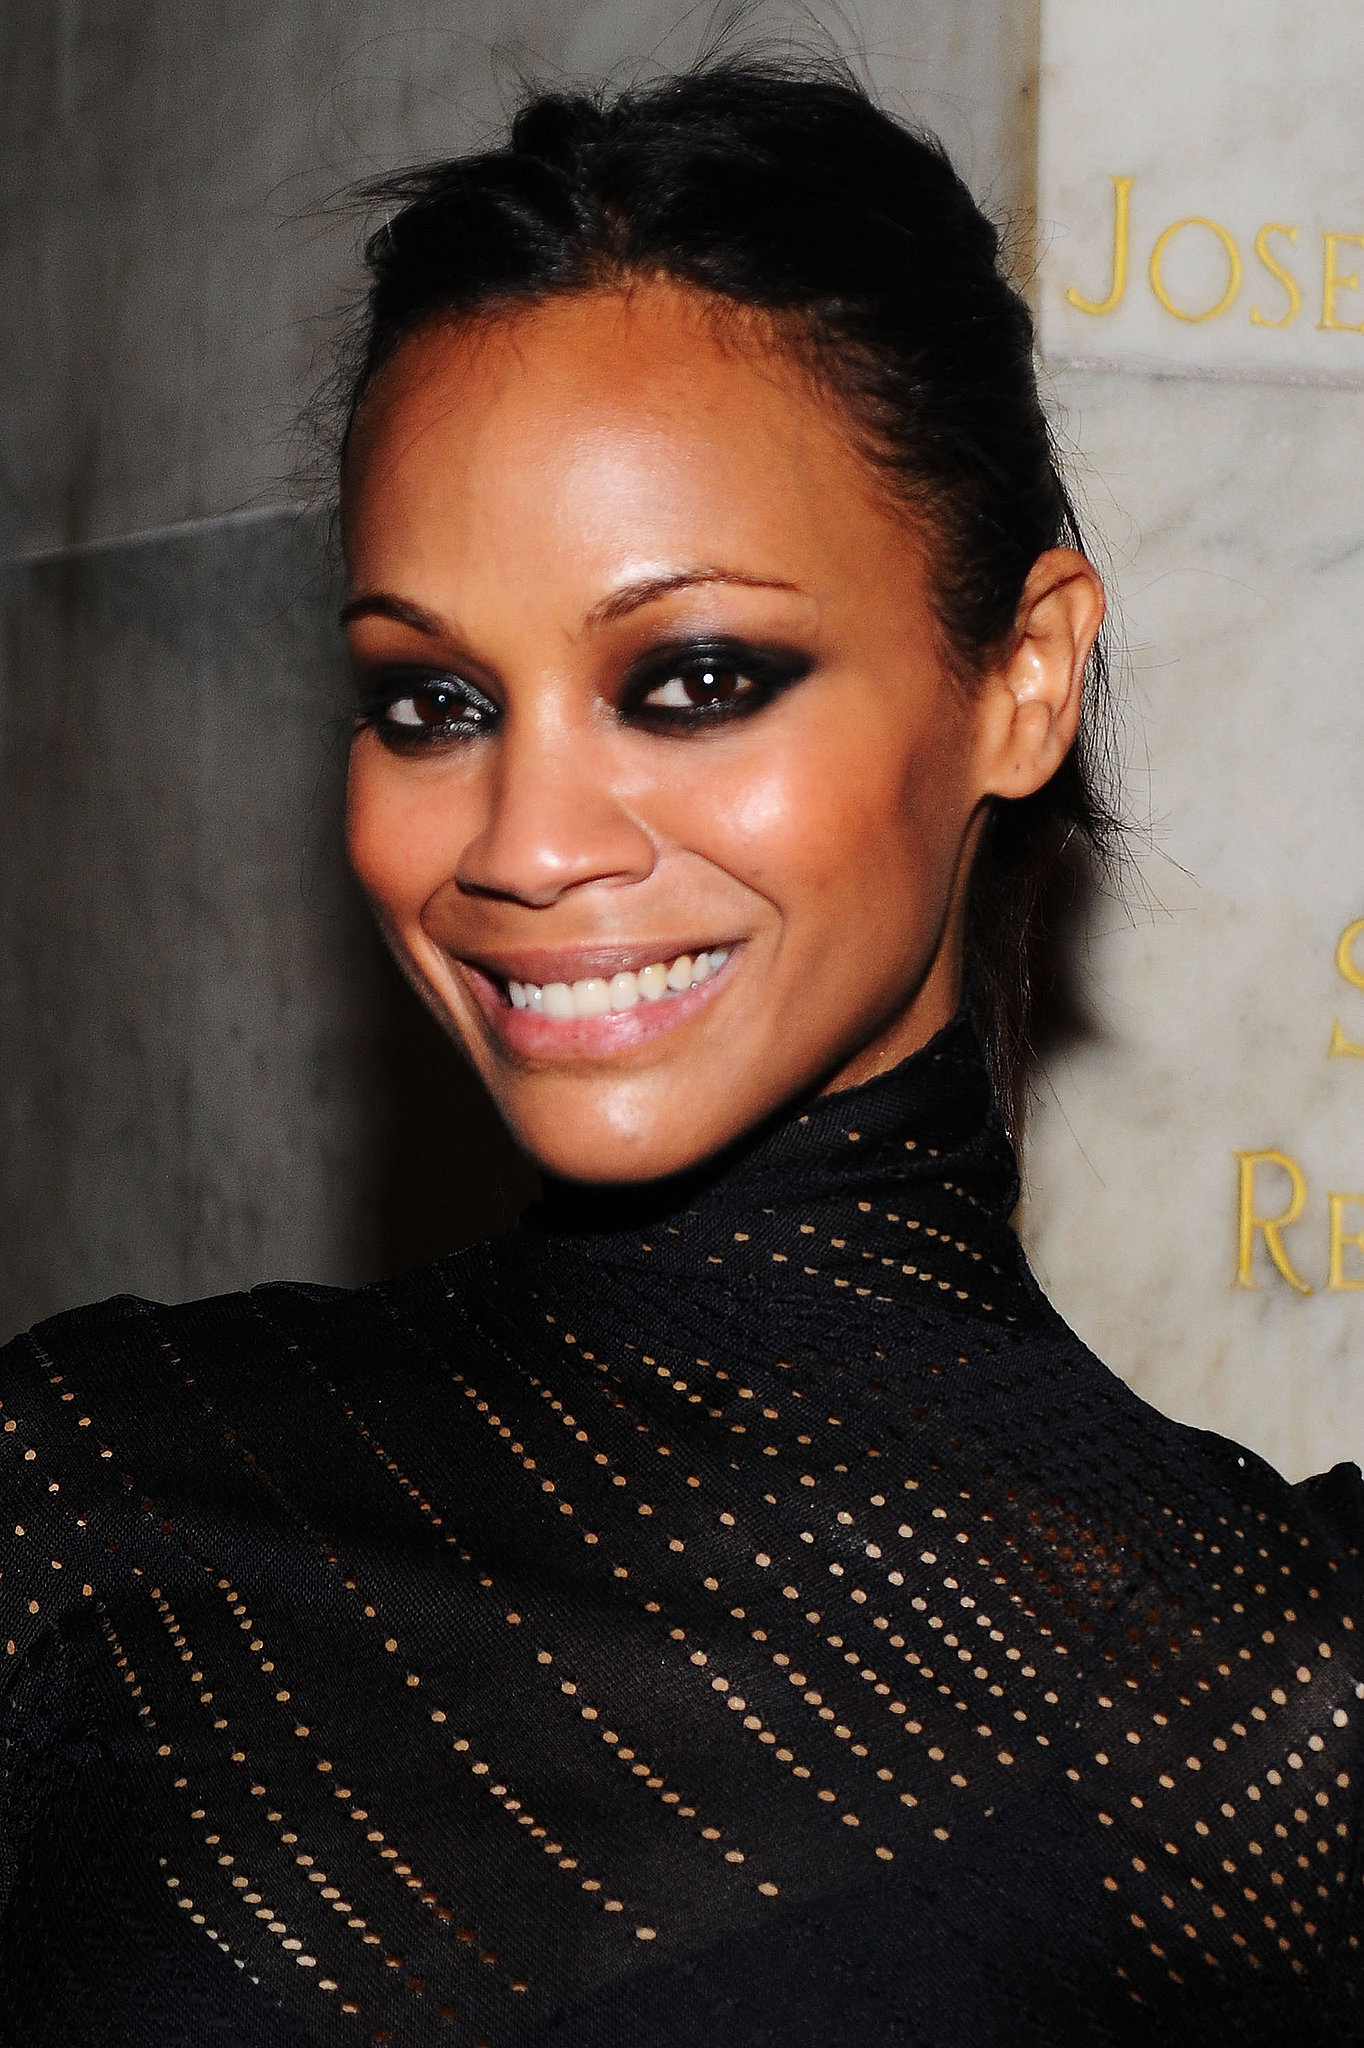 For the 2010 amfAR New York Inspiration Gala, Zoe went for a dramatic look with her hair pulled back and black eye shadow in a cat-eye shape.